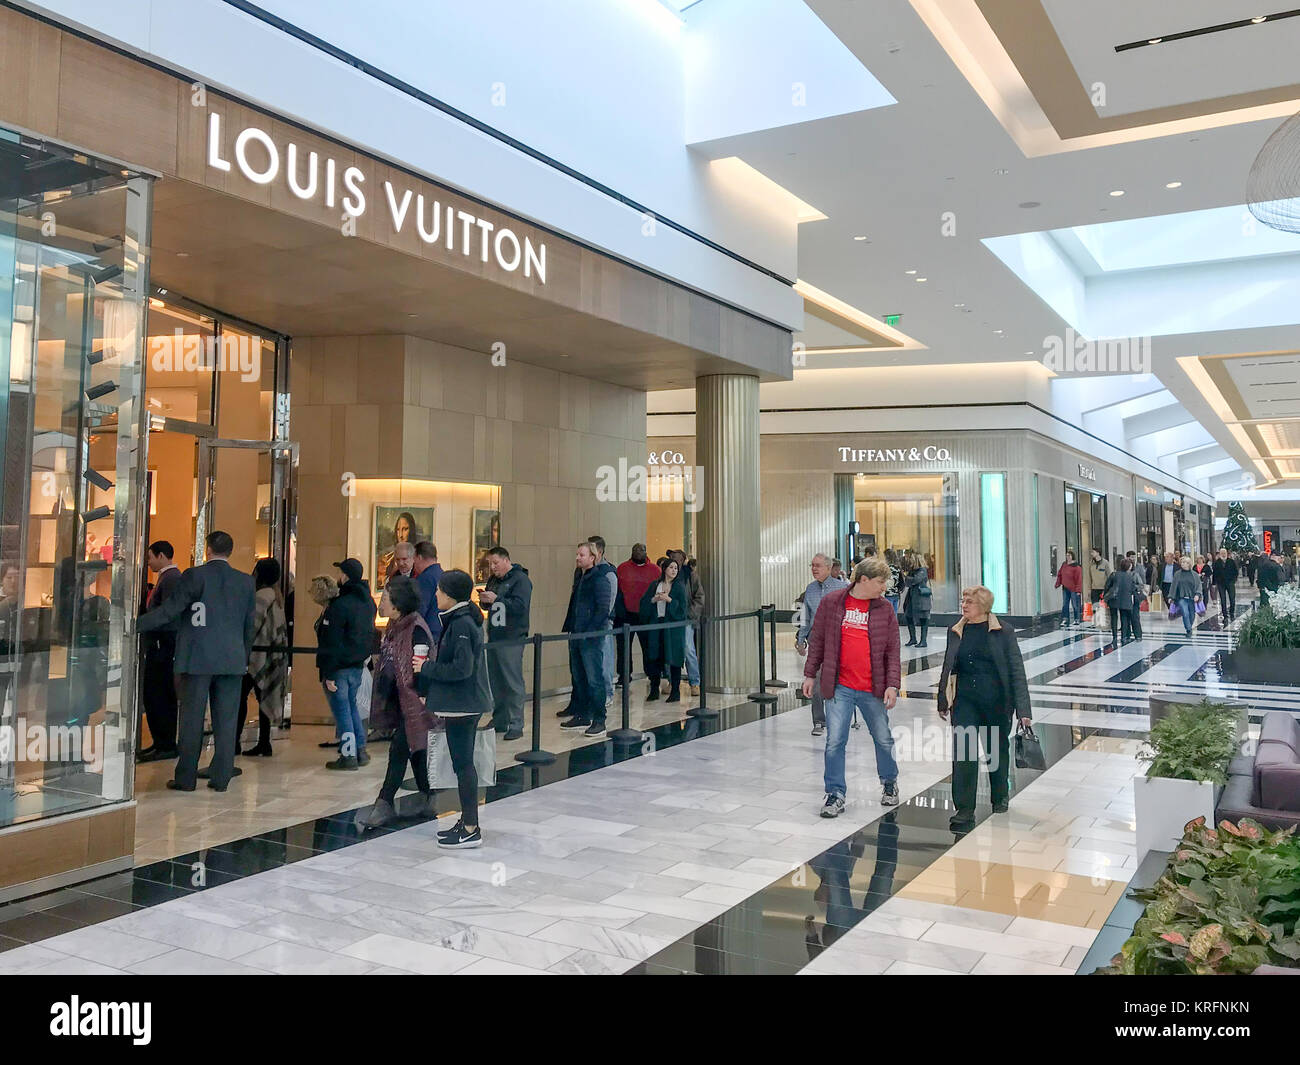 King of Prussia, Pennsylvania, USA. 20th December, 2017. Shoppers wait in line outside of the Louis Vuitton store - Stock Image